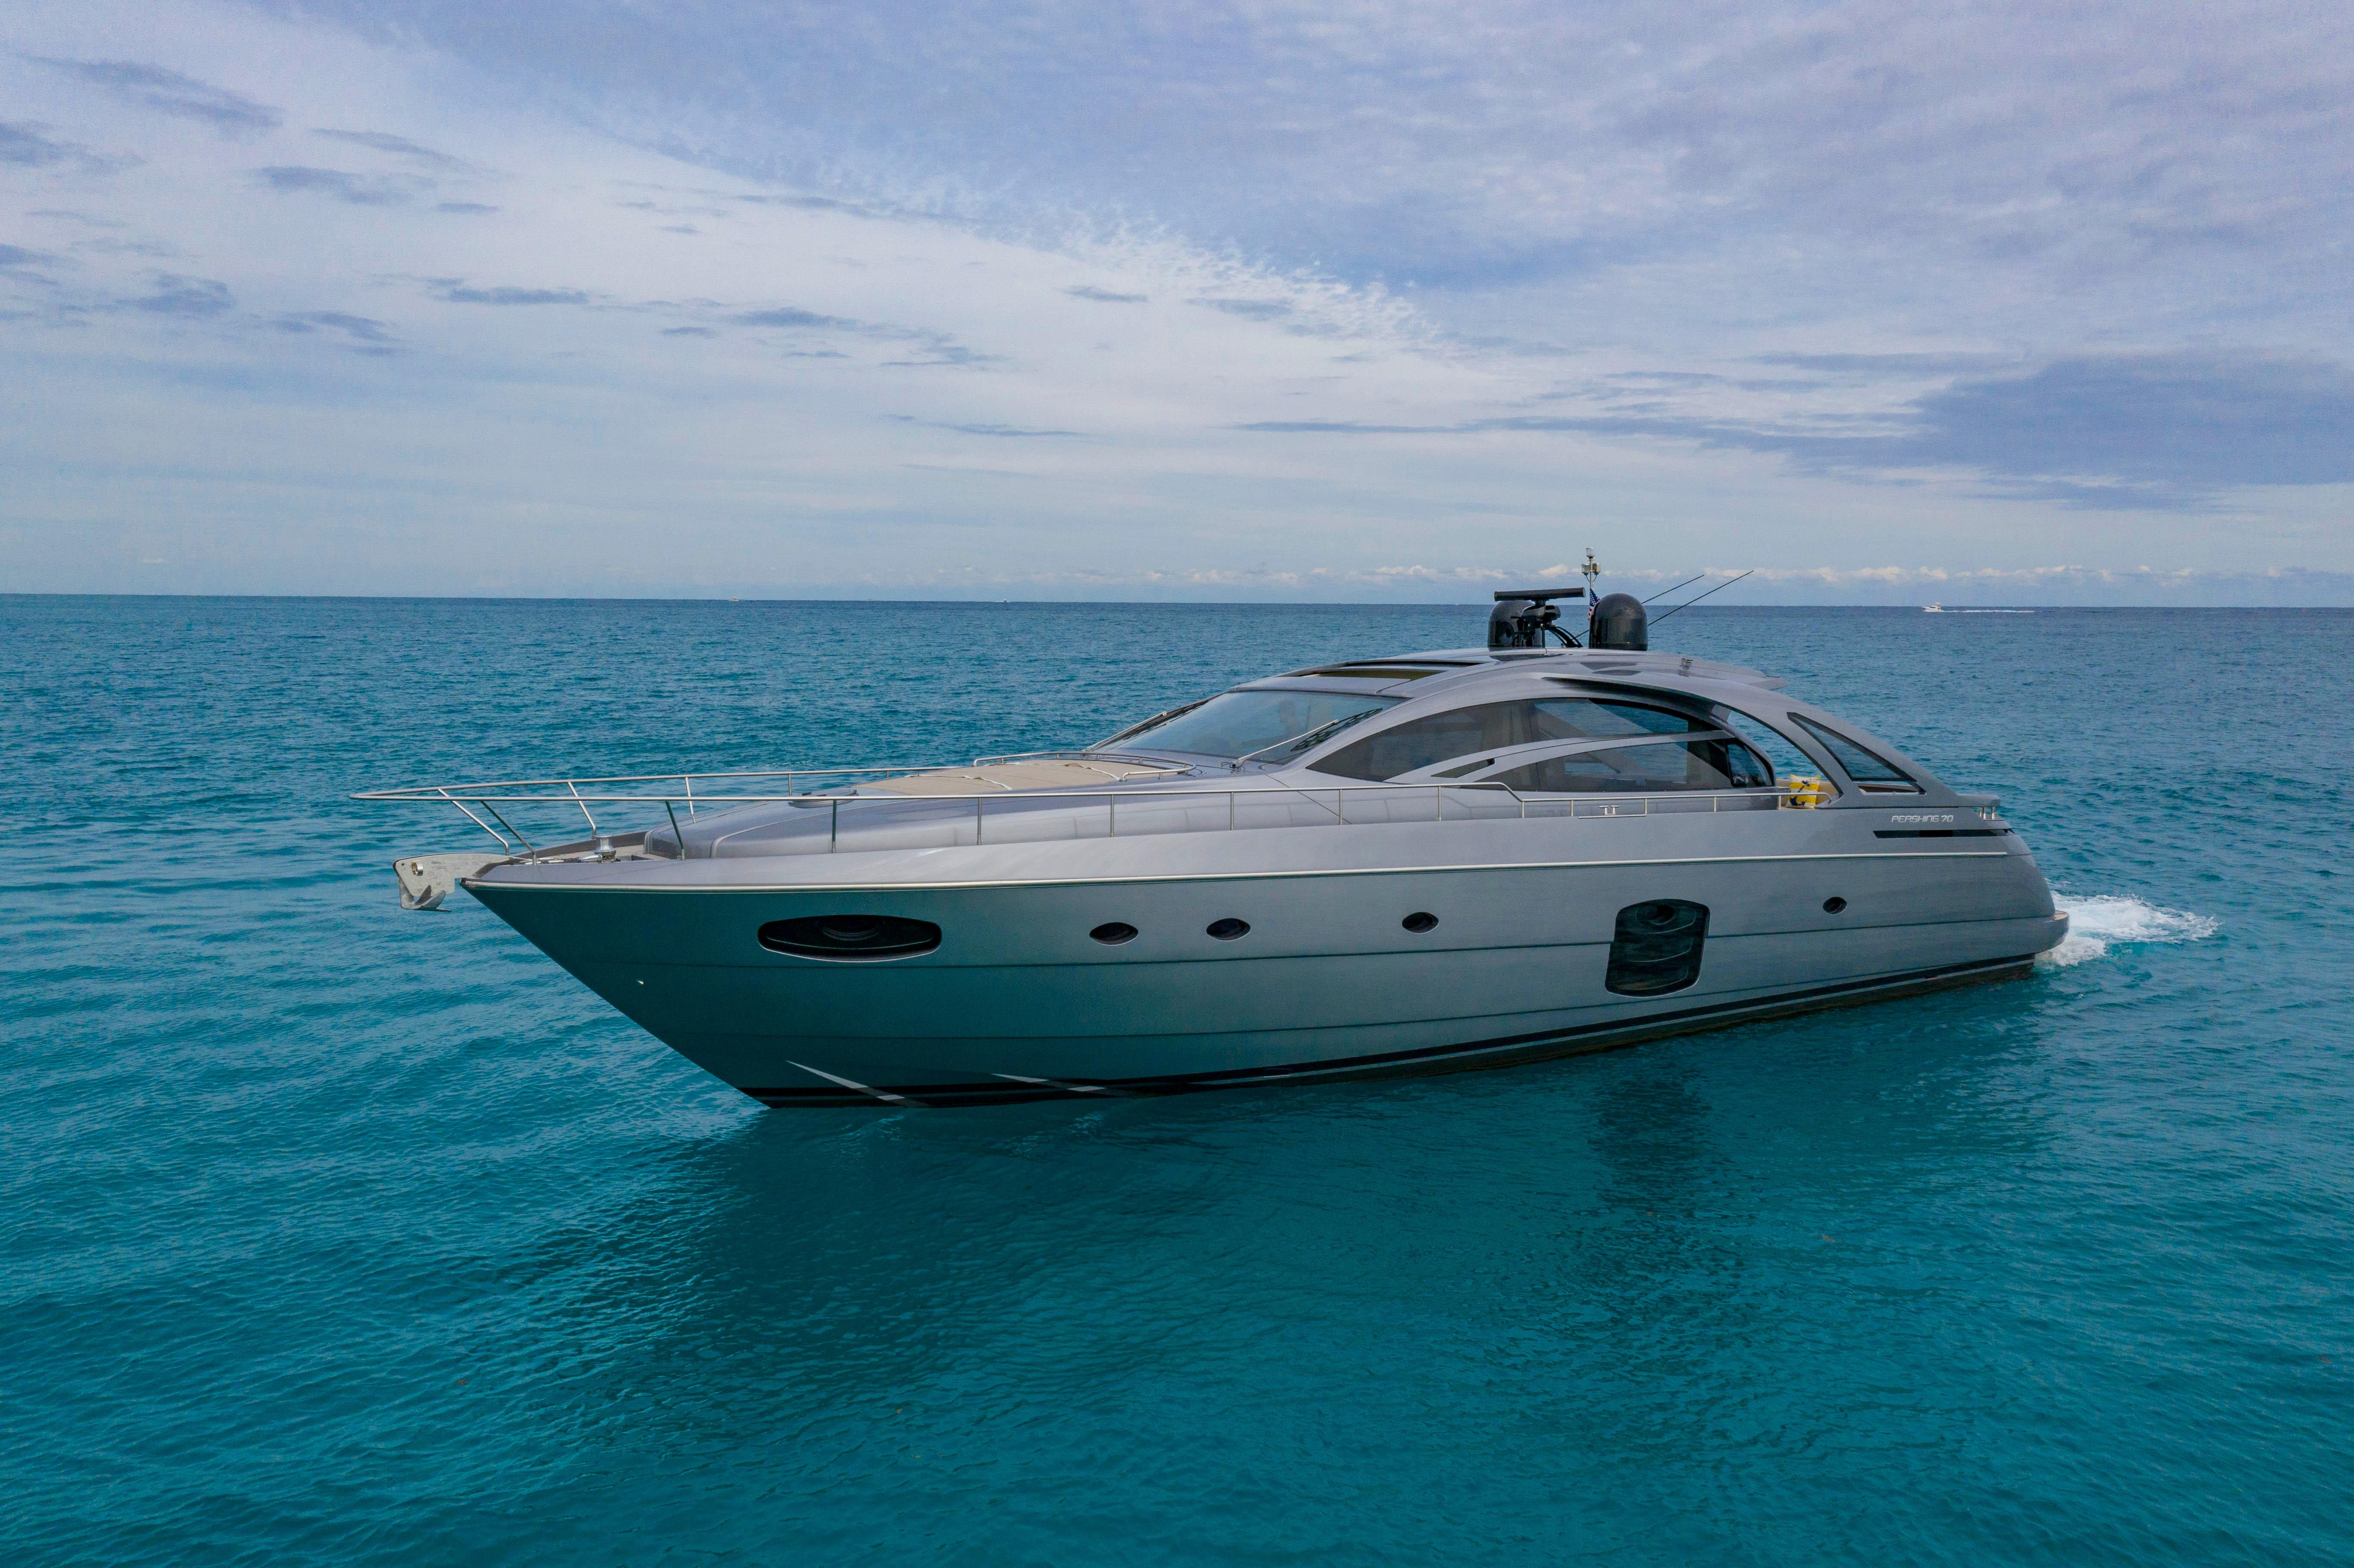 2016 Pershing 70 - Profile